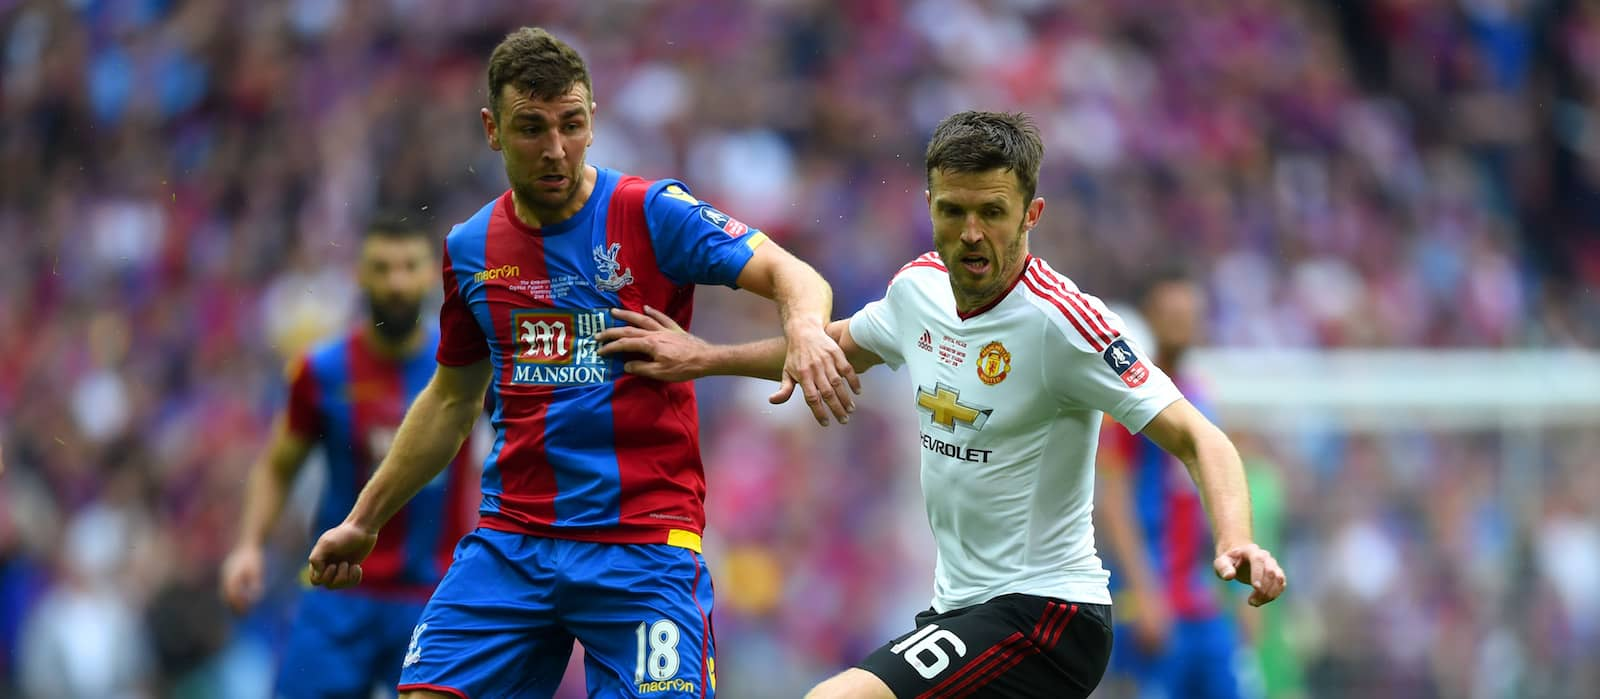 Jose Mourinho offers Michael Carrick contract extension at Man United – report